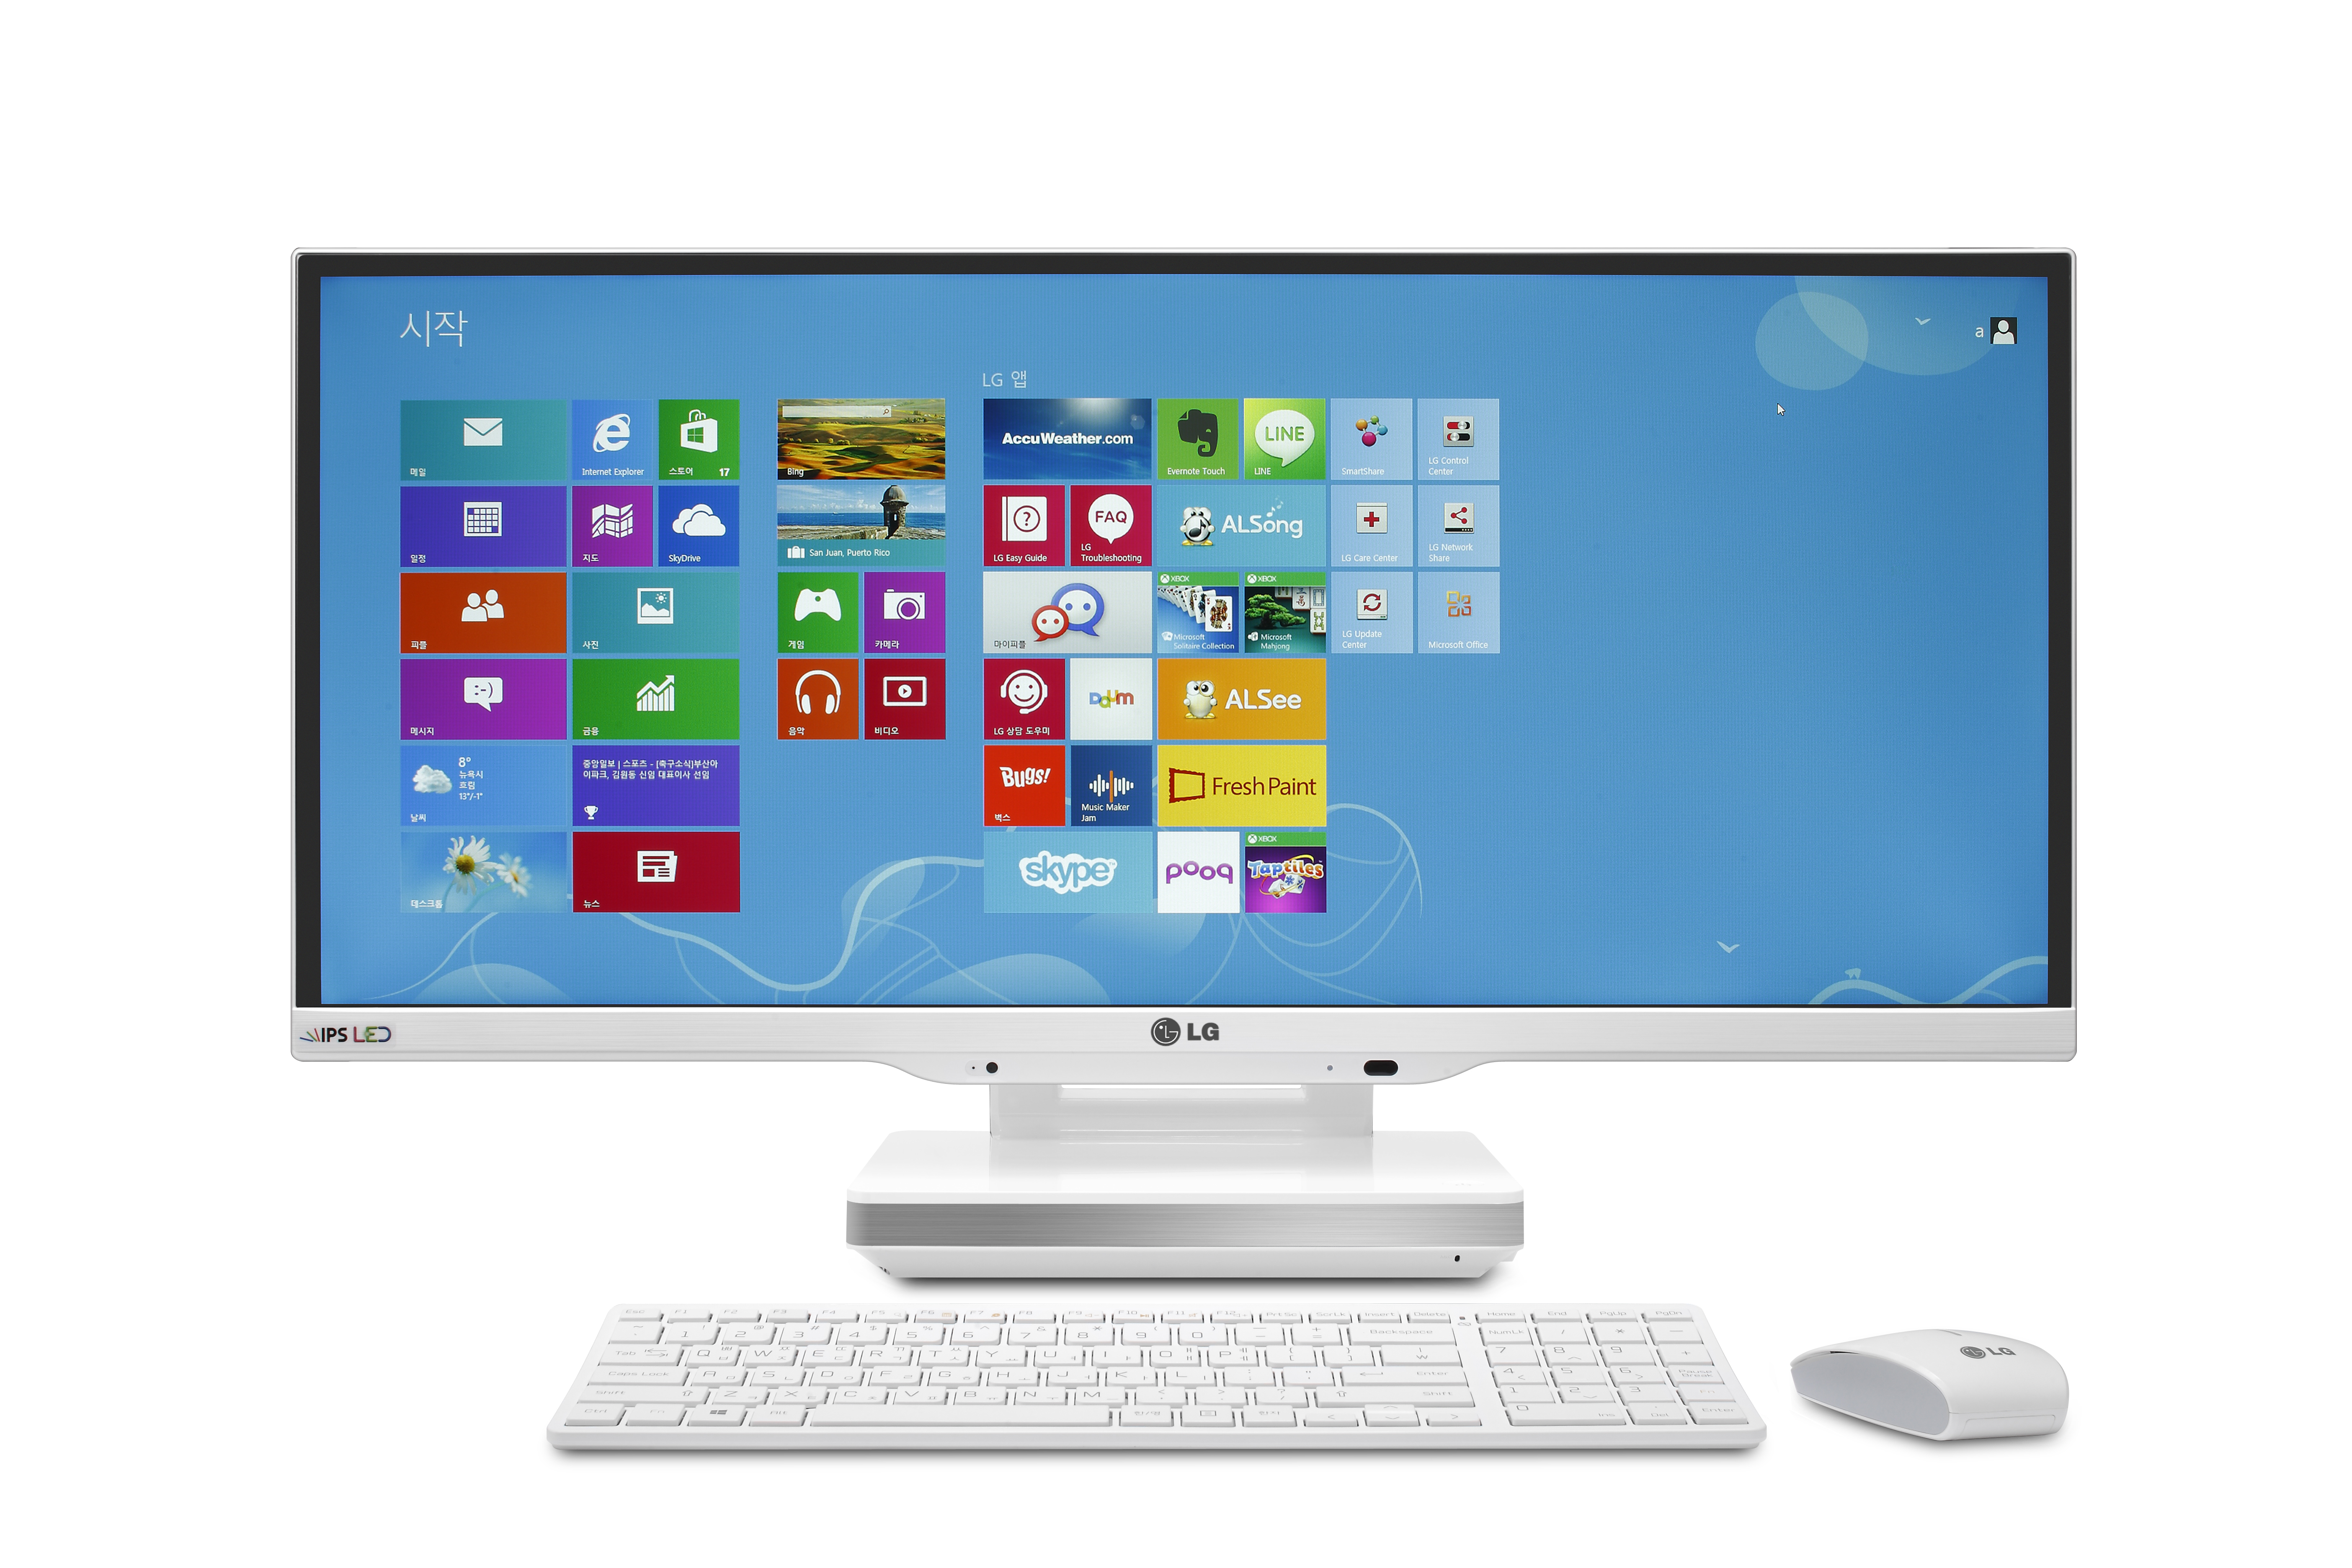 Front view of the LG IPS 21:9 UltraWide All-In-One PC Model V960